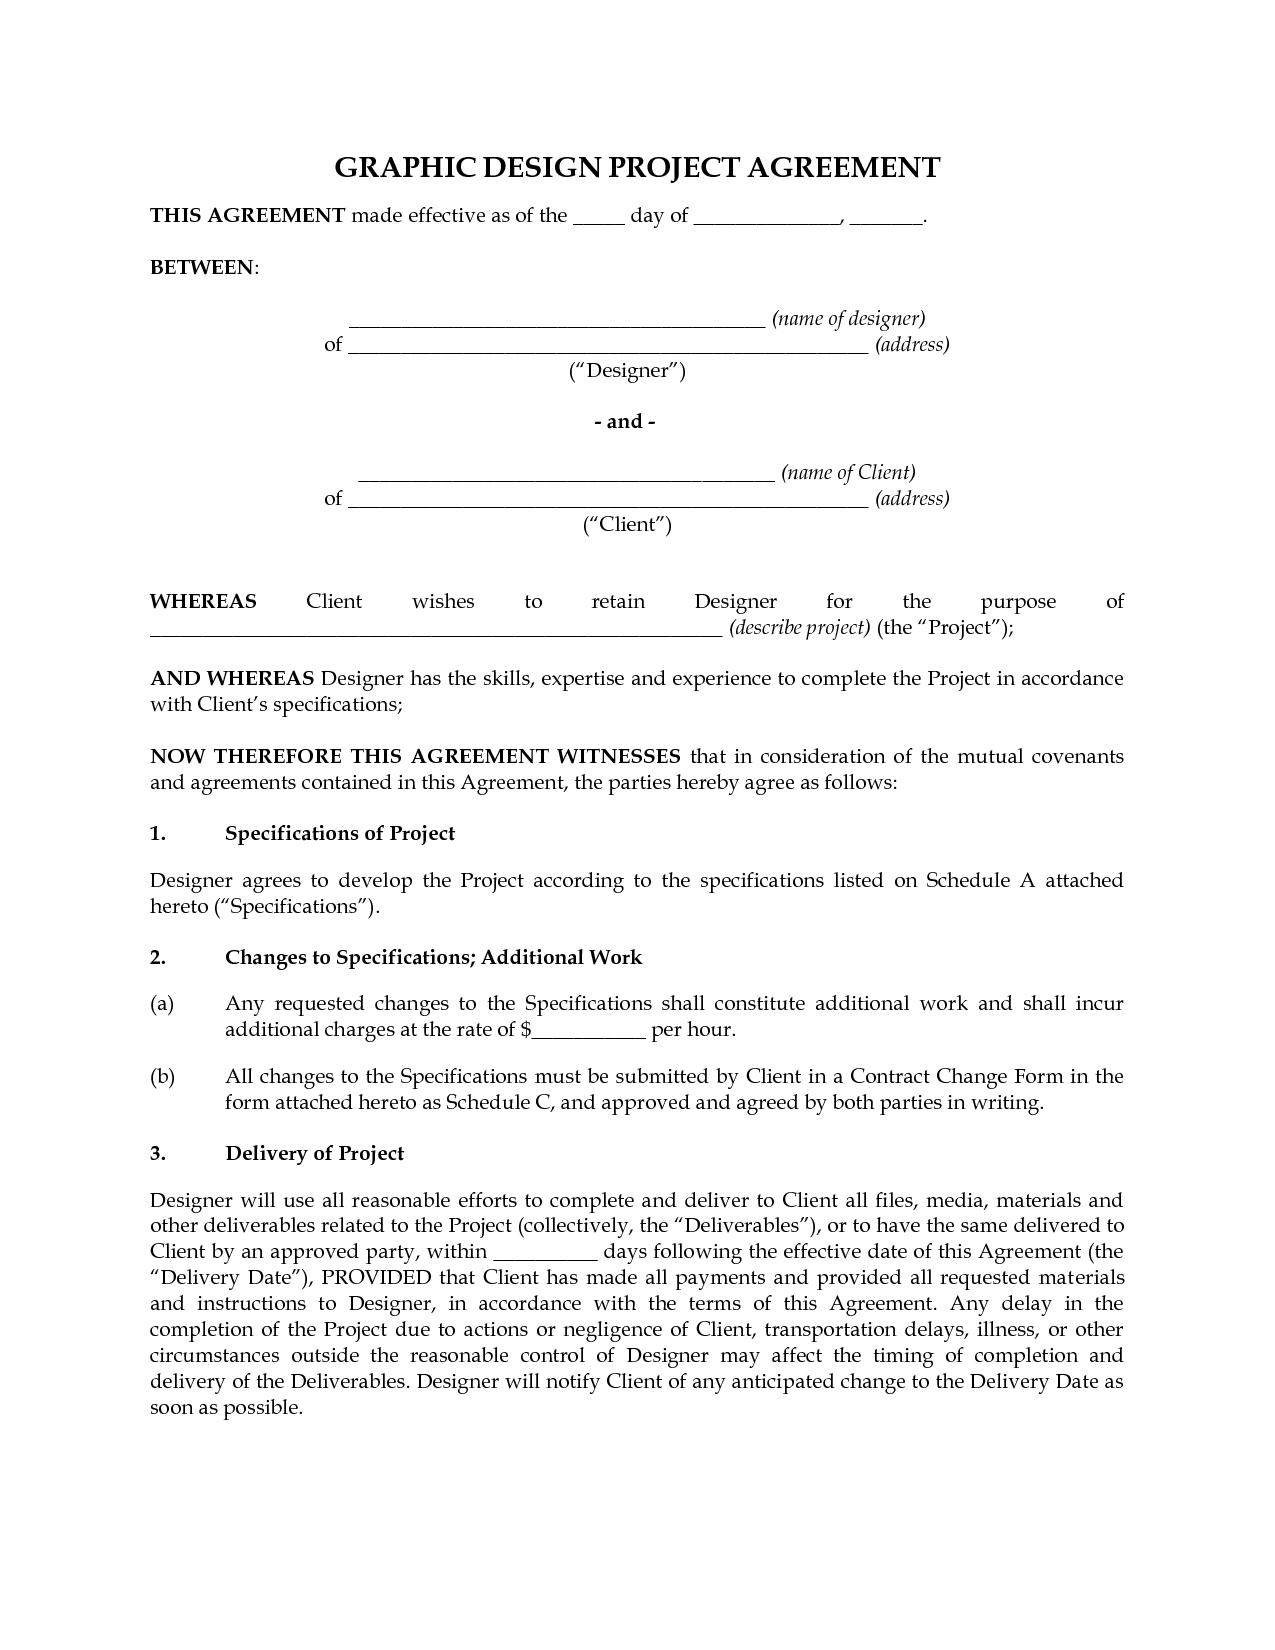 Graphics Design Contract Template